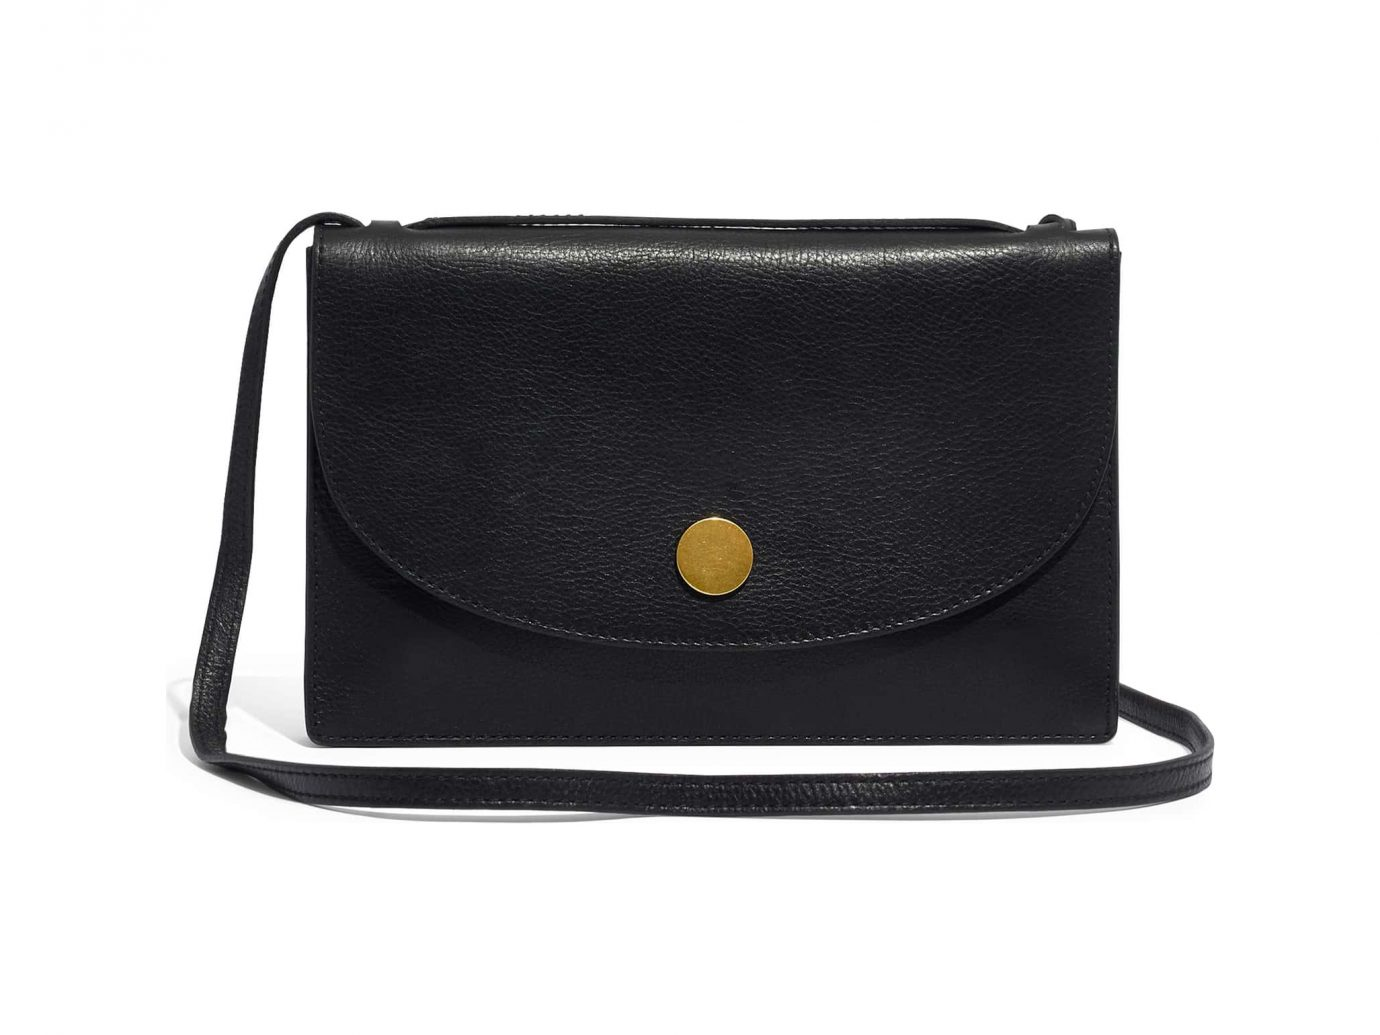 The Slim Convertible Leather Shoulder Bag MADEWELL